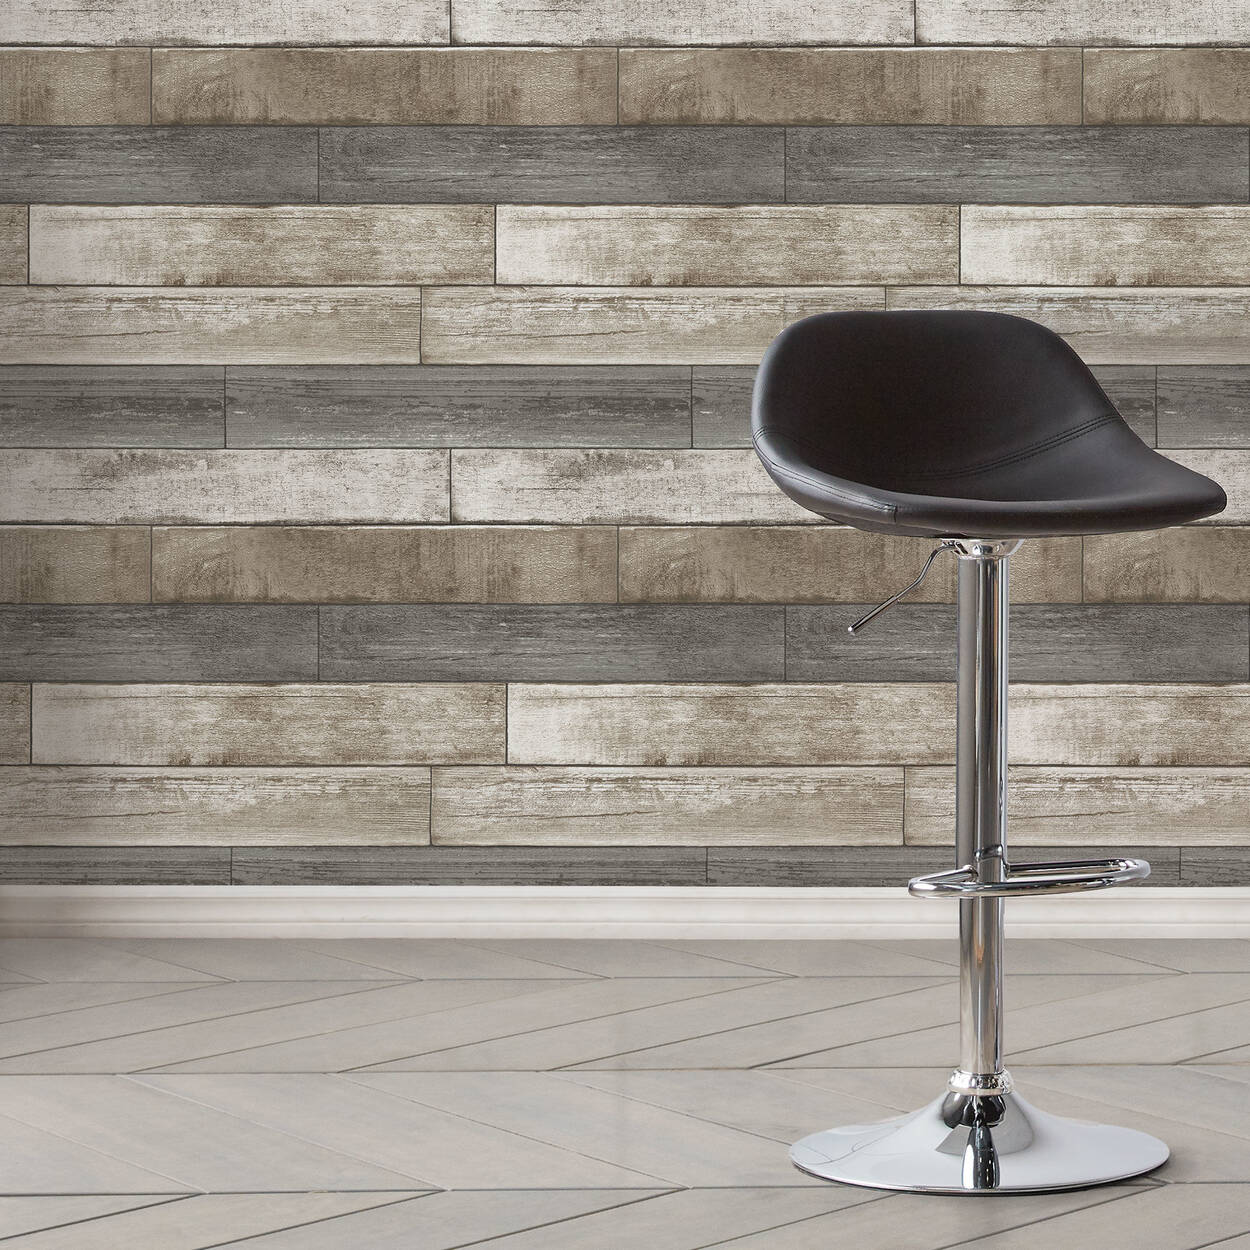 Weathered Plank Wallpaper - Double Roll